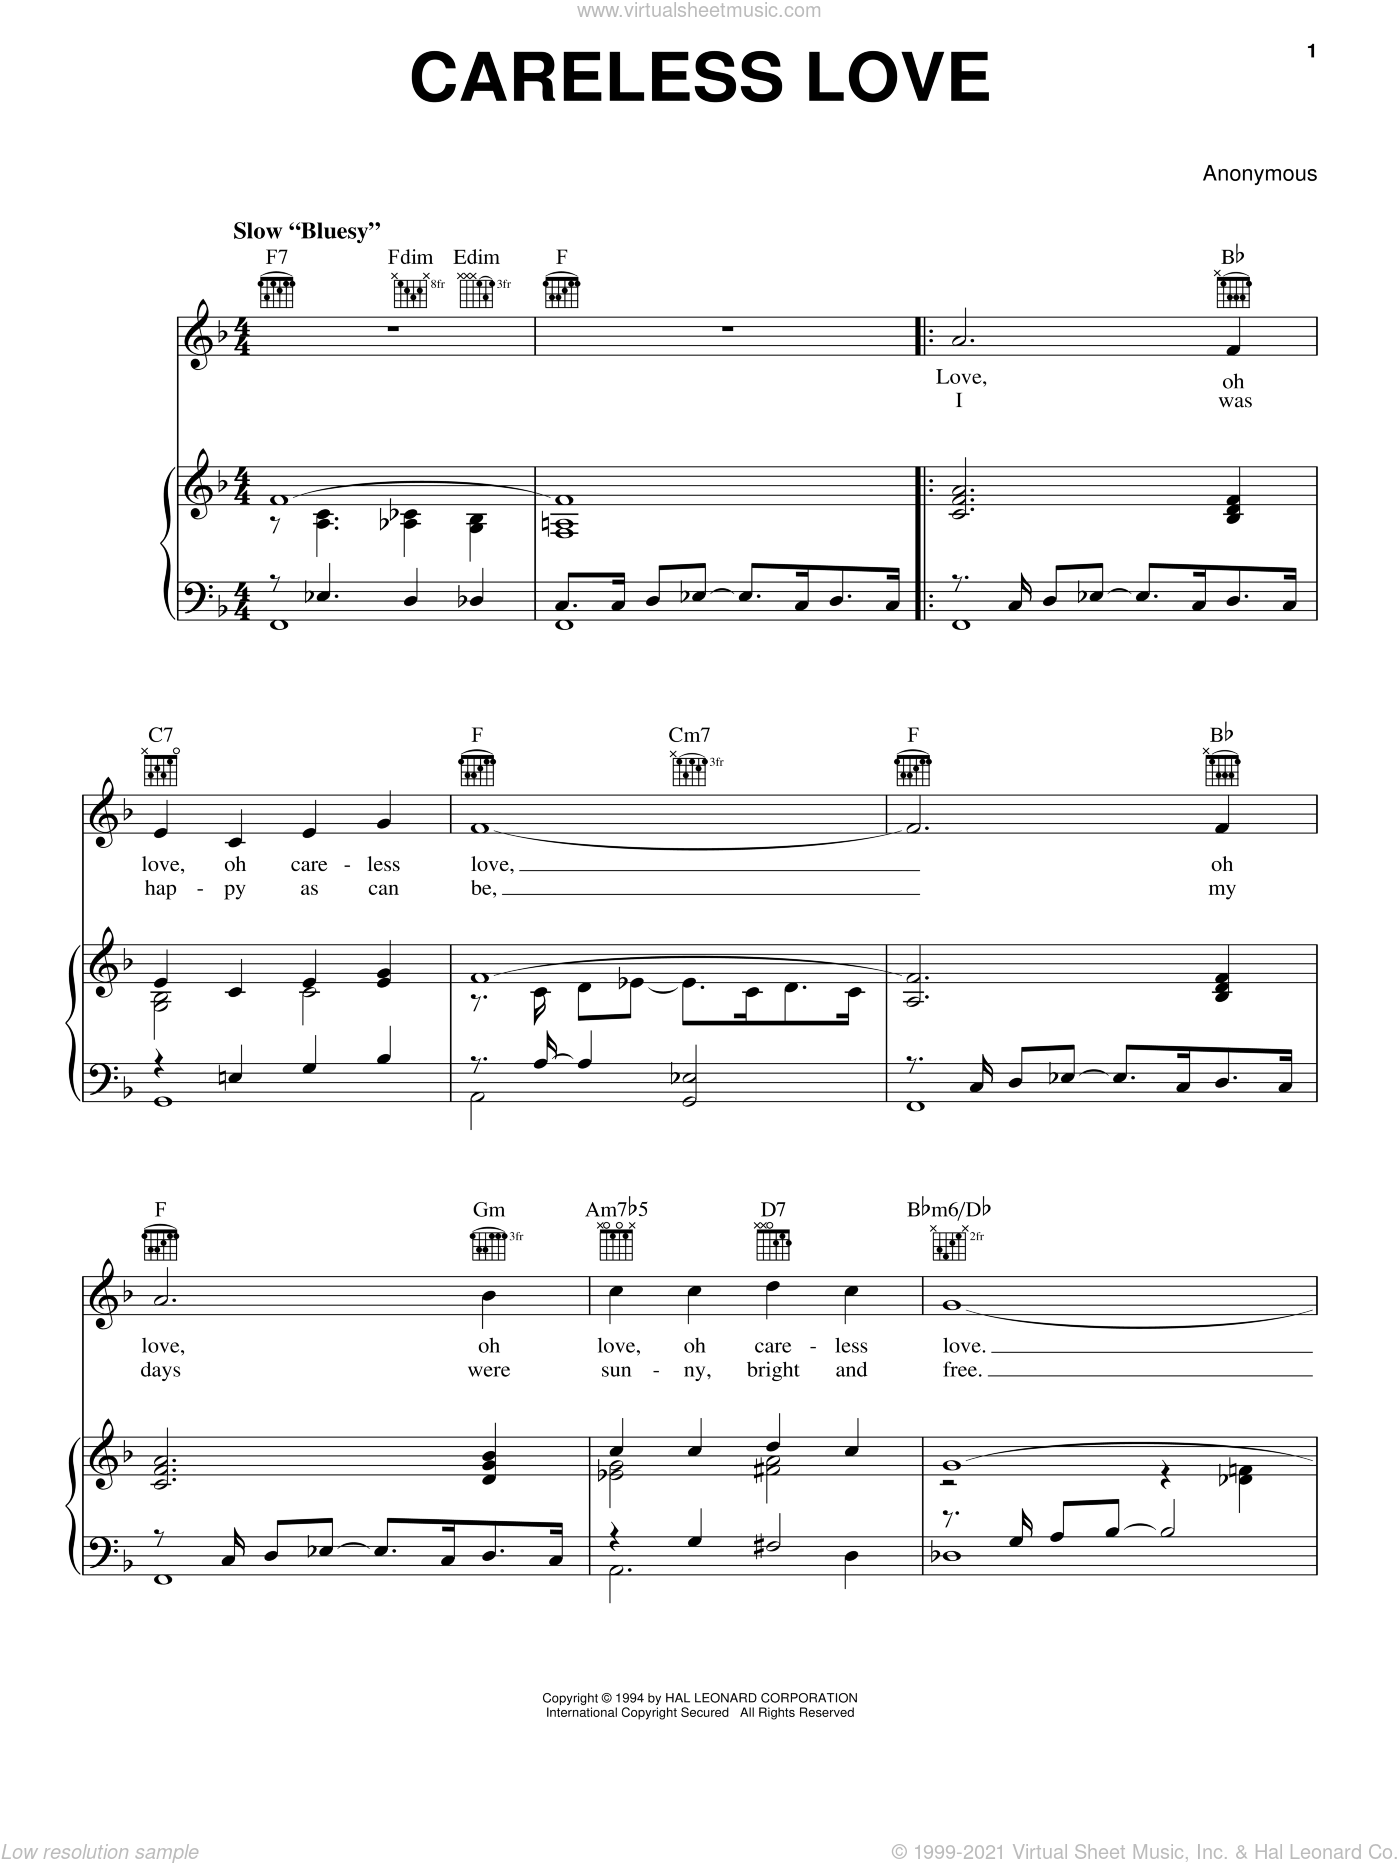 Careless Love sheet music for voice, piano or guitar by Anonymous, classical score, intermediate skill level